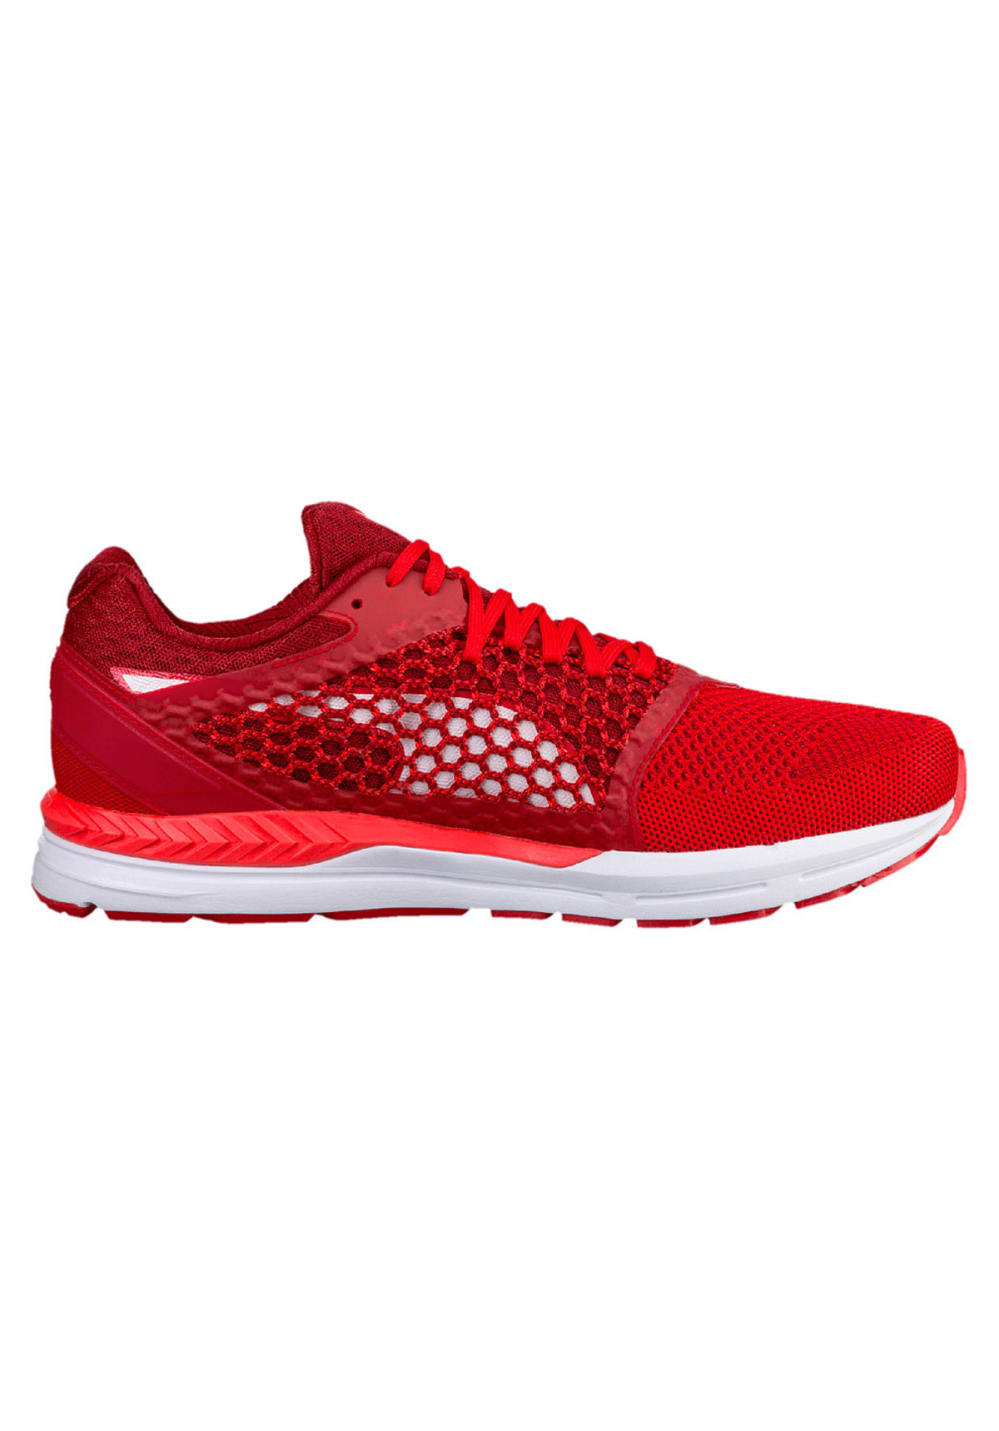 Puma Speed 600 IGNITE 3 Chaussures running pour Homme Rouge